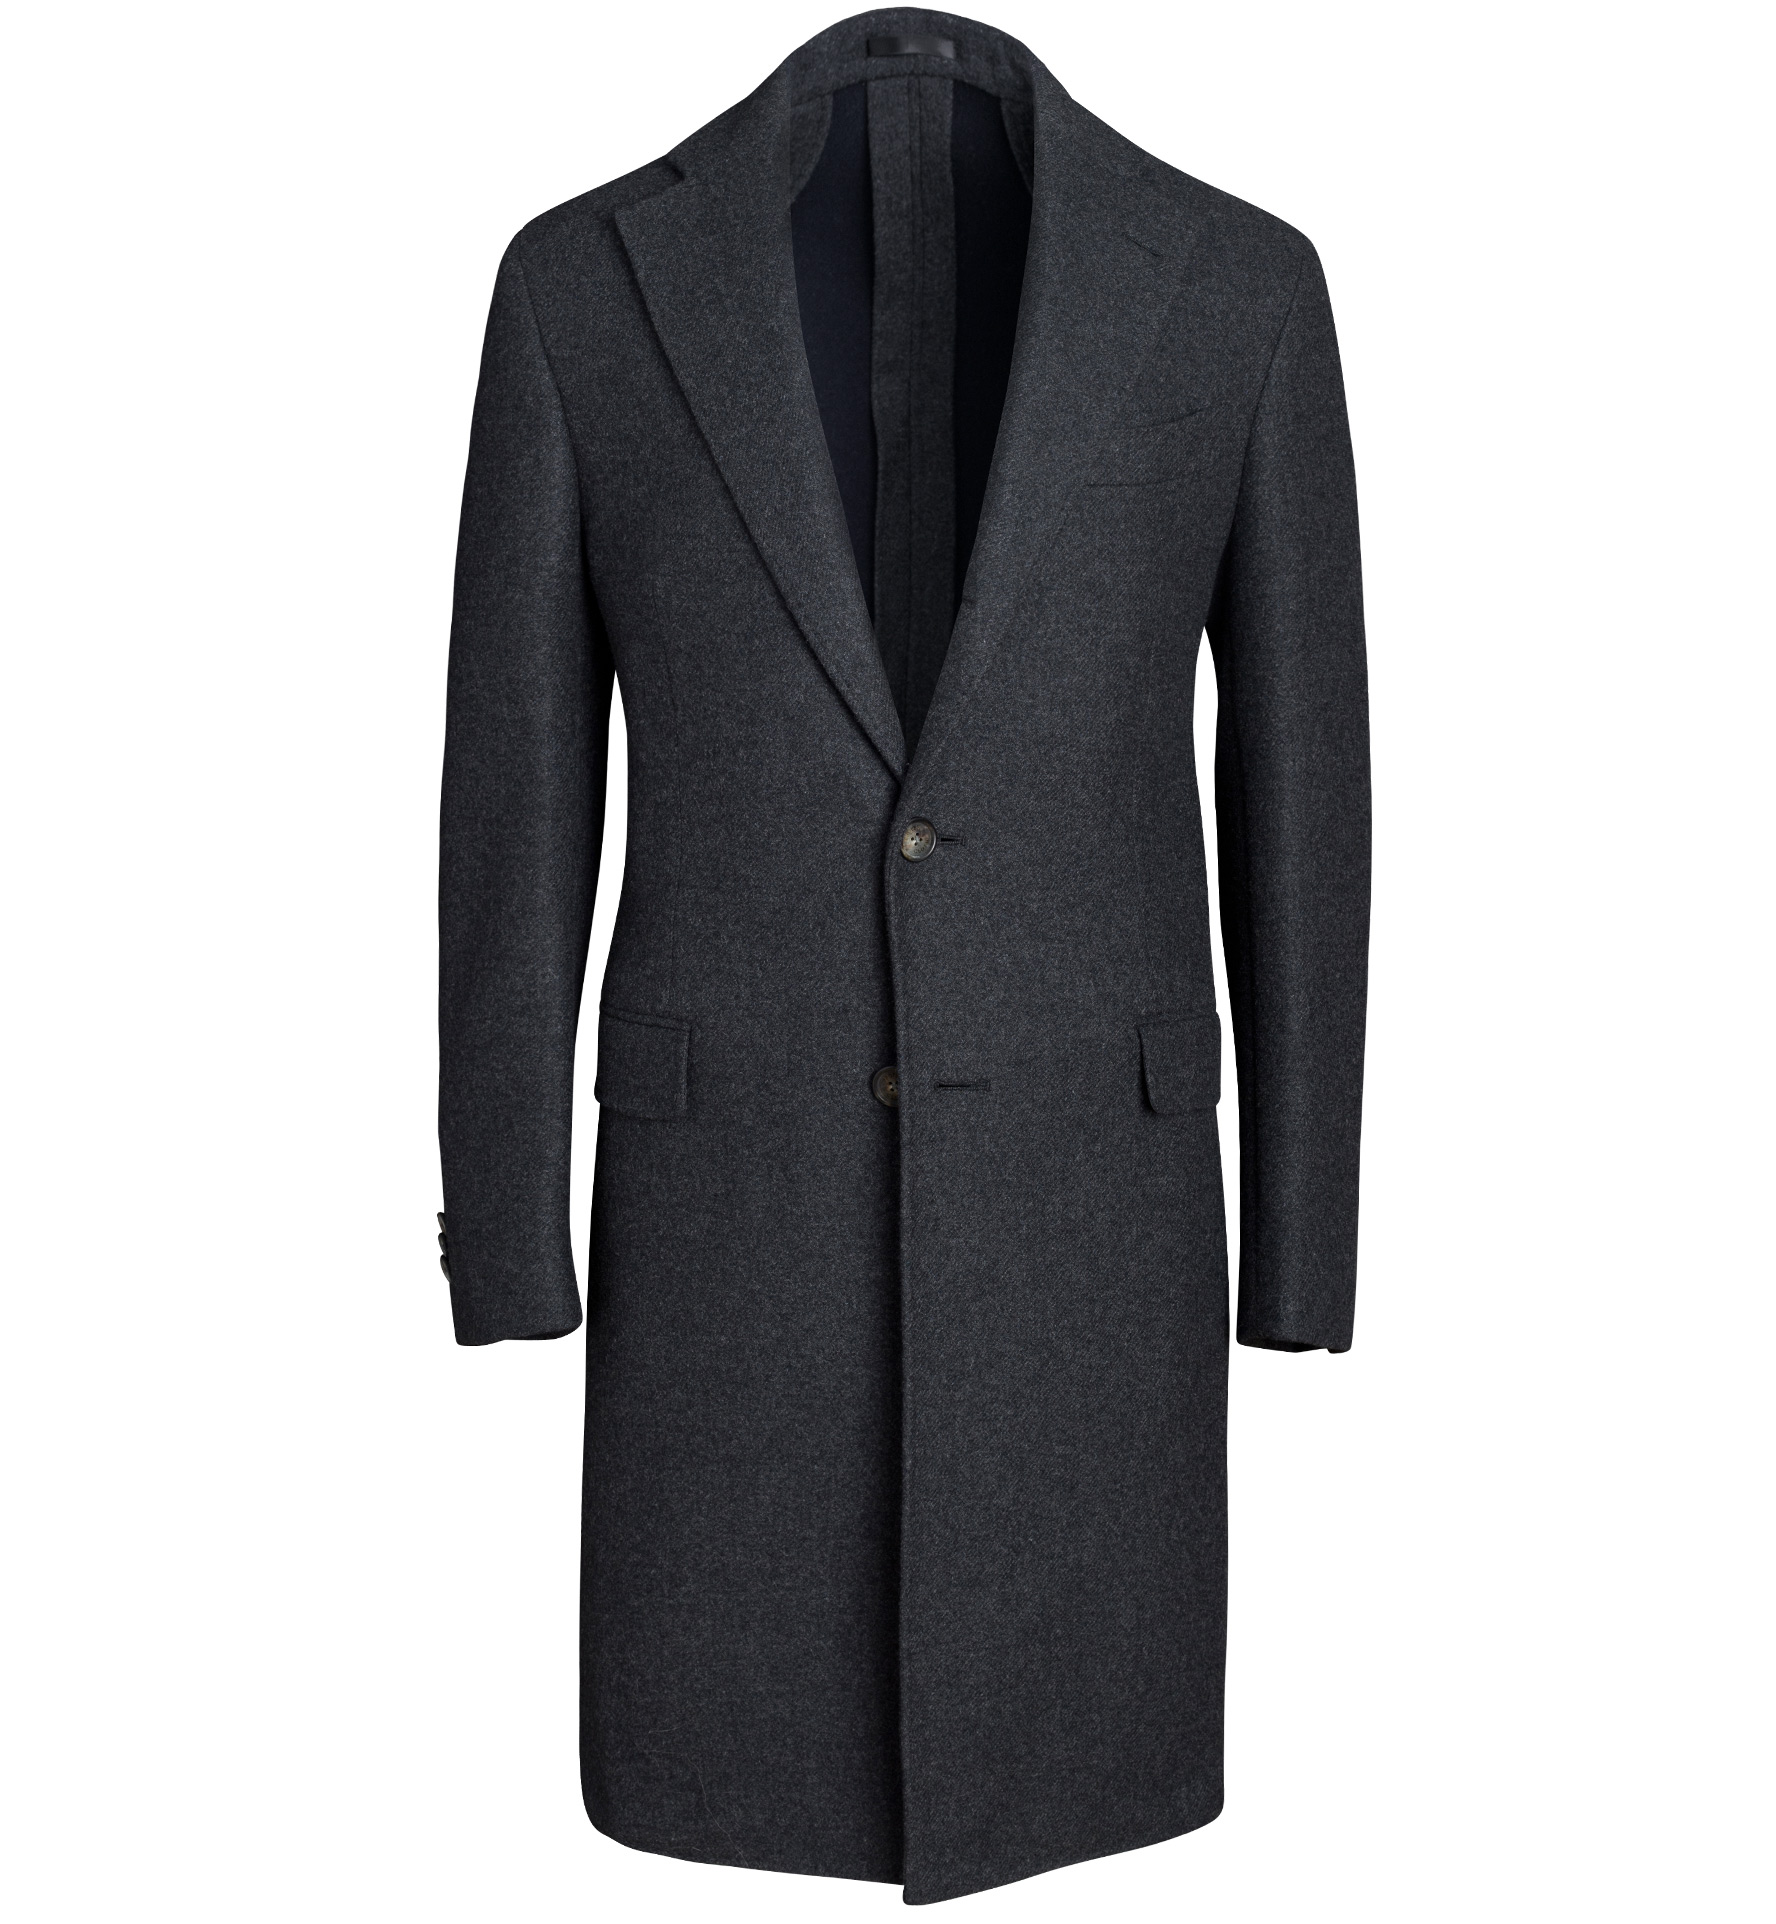 Zoom Image of Bowery Charcoal Wool Unstructured Coat